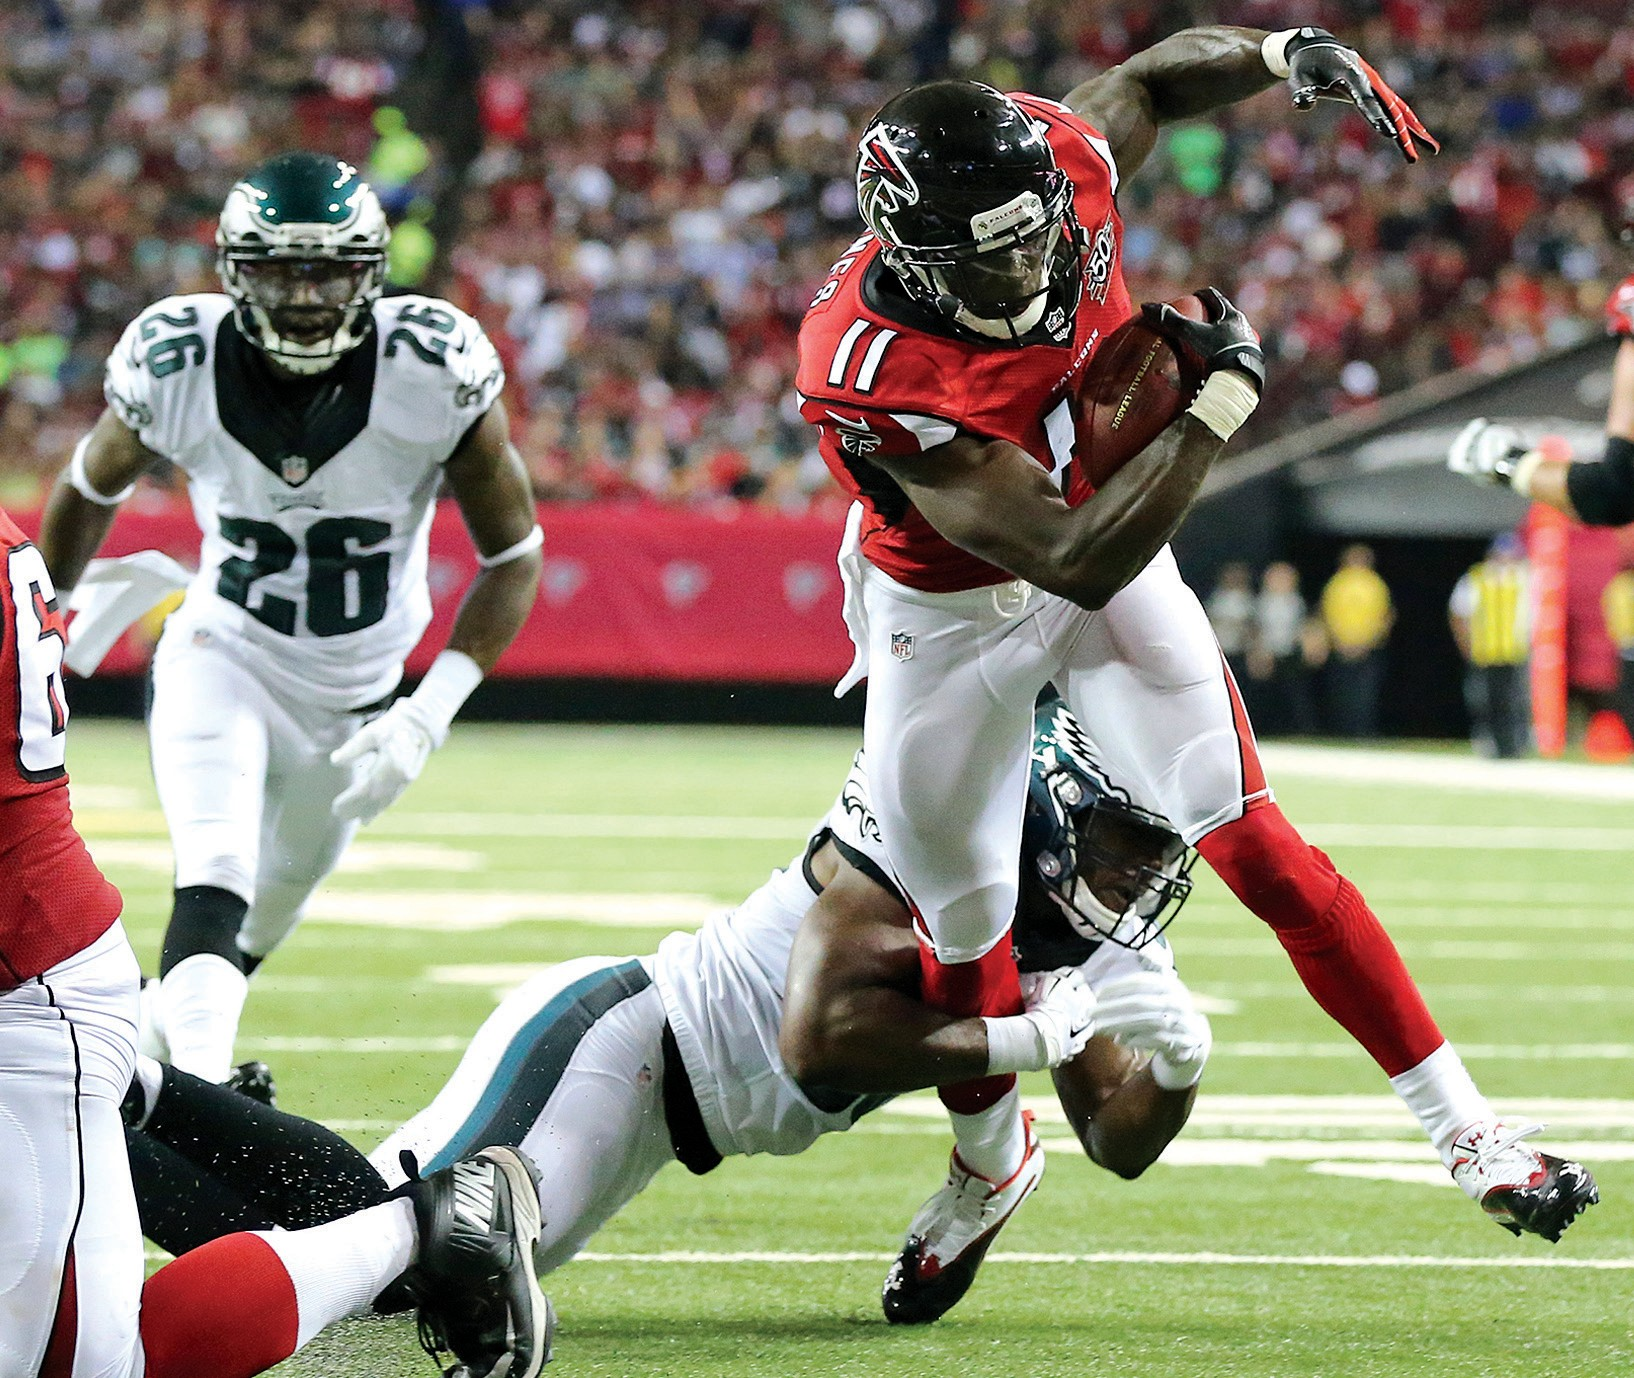 Falcons wide receiver Julio Jones catches a pass and breaks a tackle attempt by Eagles linebacker DeMeco Ryans on his way to the endzone for a touchdown during an NFL football game on Monday in Atlanta.